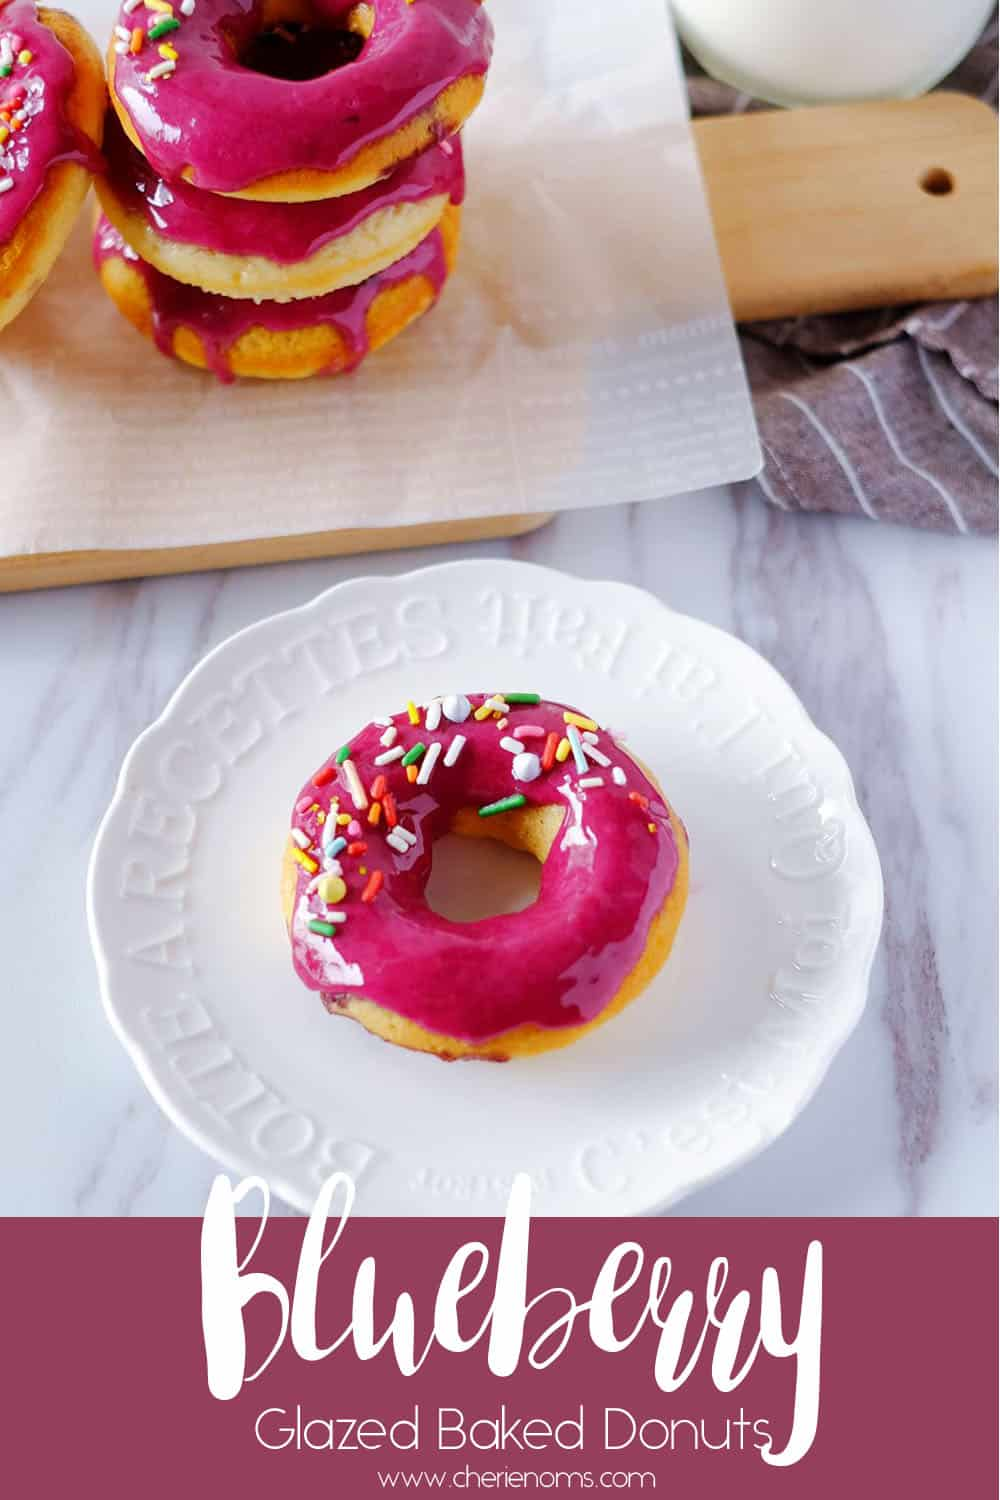 Moist and cakey baked donuts with sweet blueberry glaze! Enjoy this tender cake-like baked donuts on its own, with dusted icing sugar, or with the sweet glaze. via @cherienoms